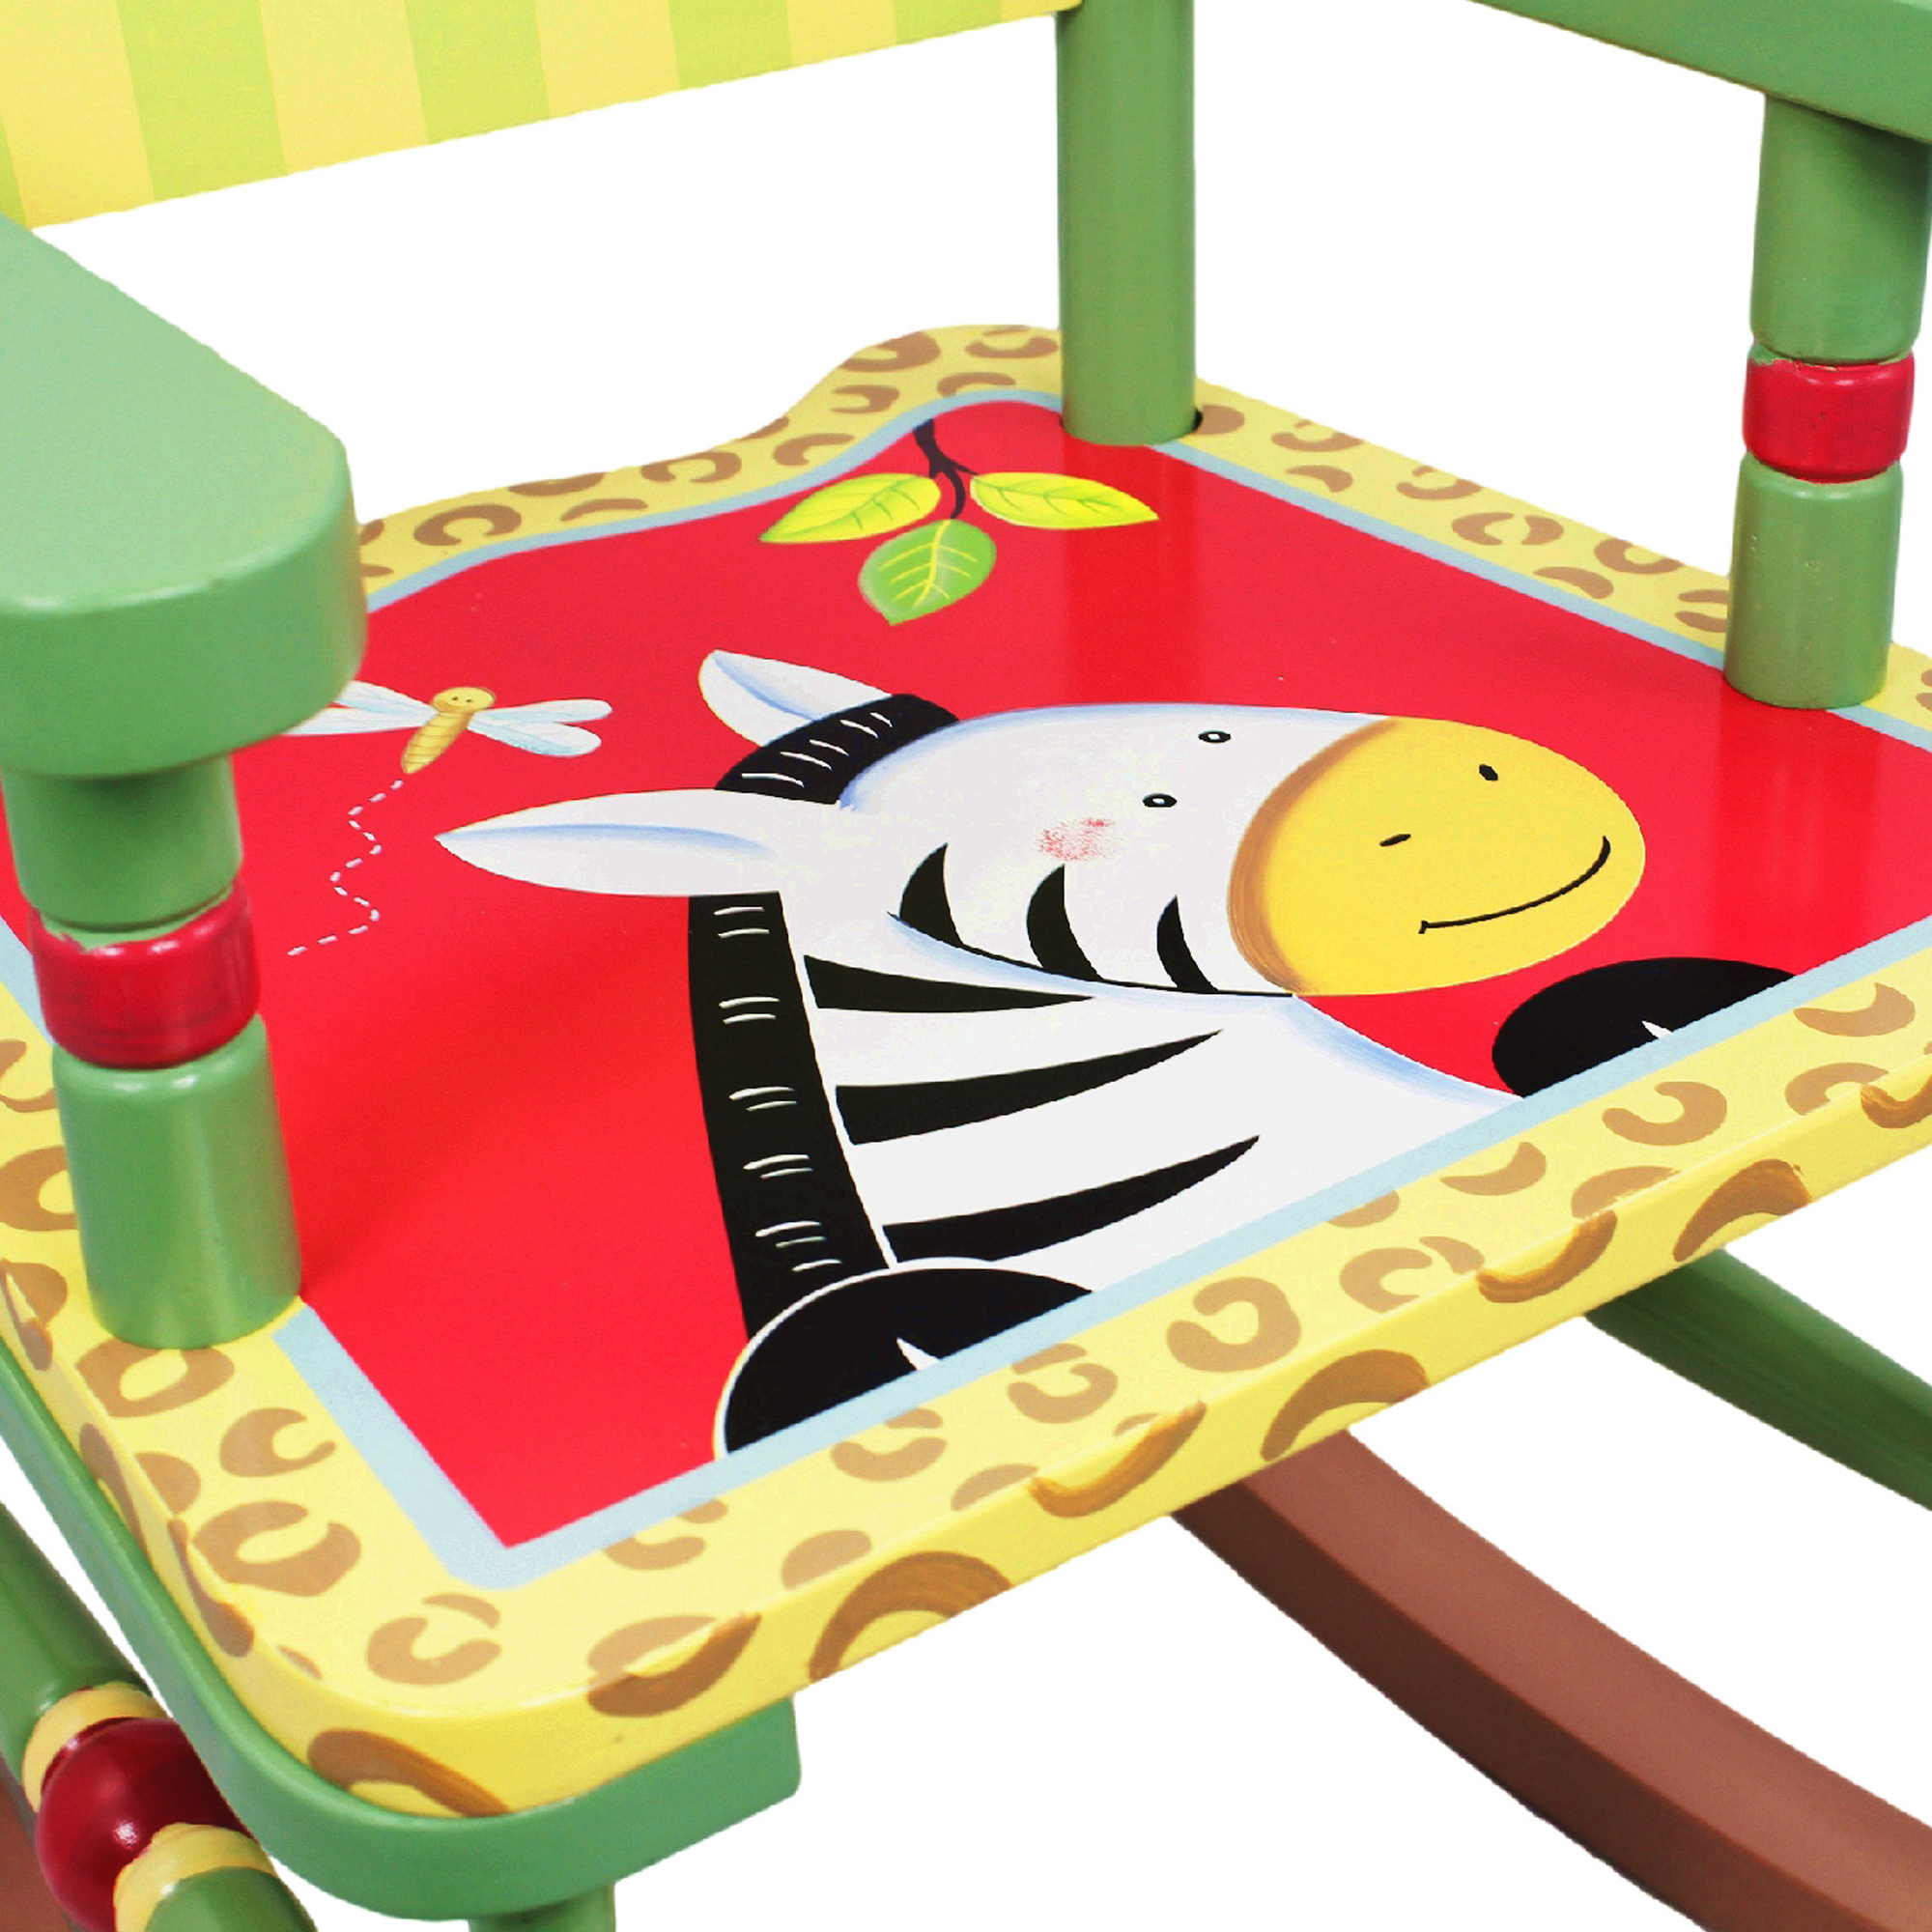 Sunny Safari Rocking Chair by Teamson - Fantasy Fields